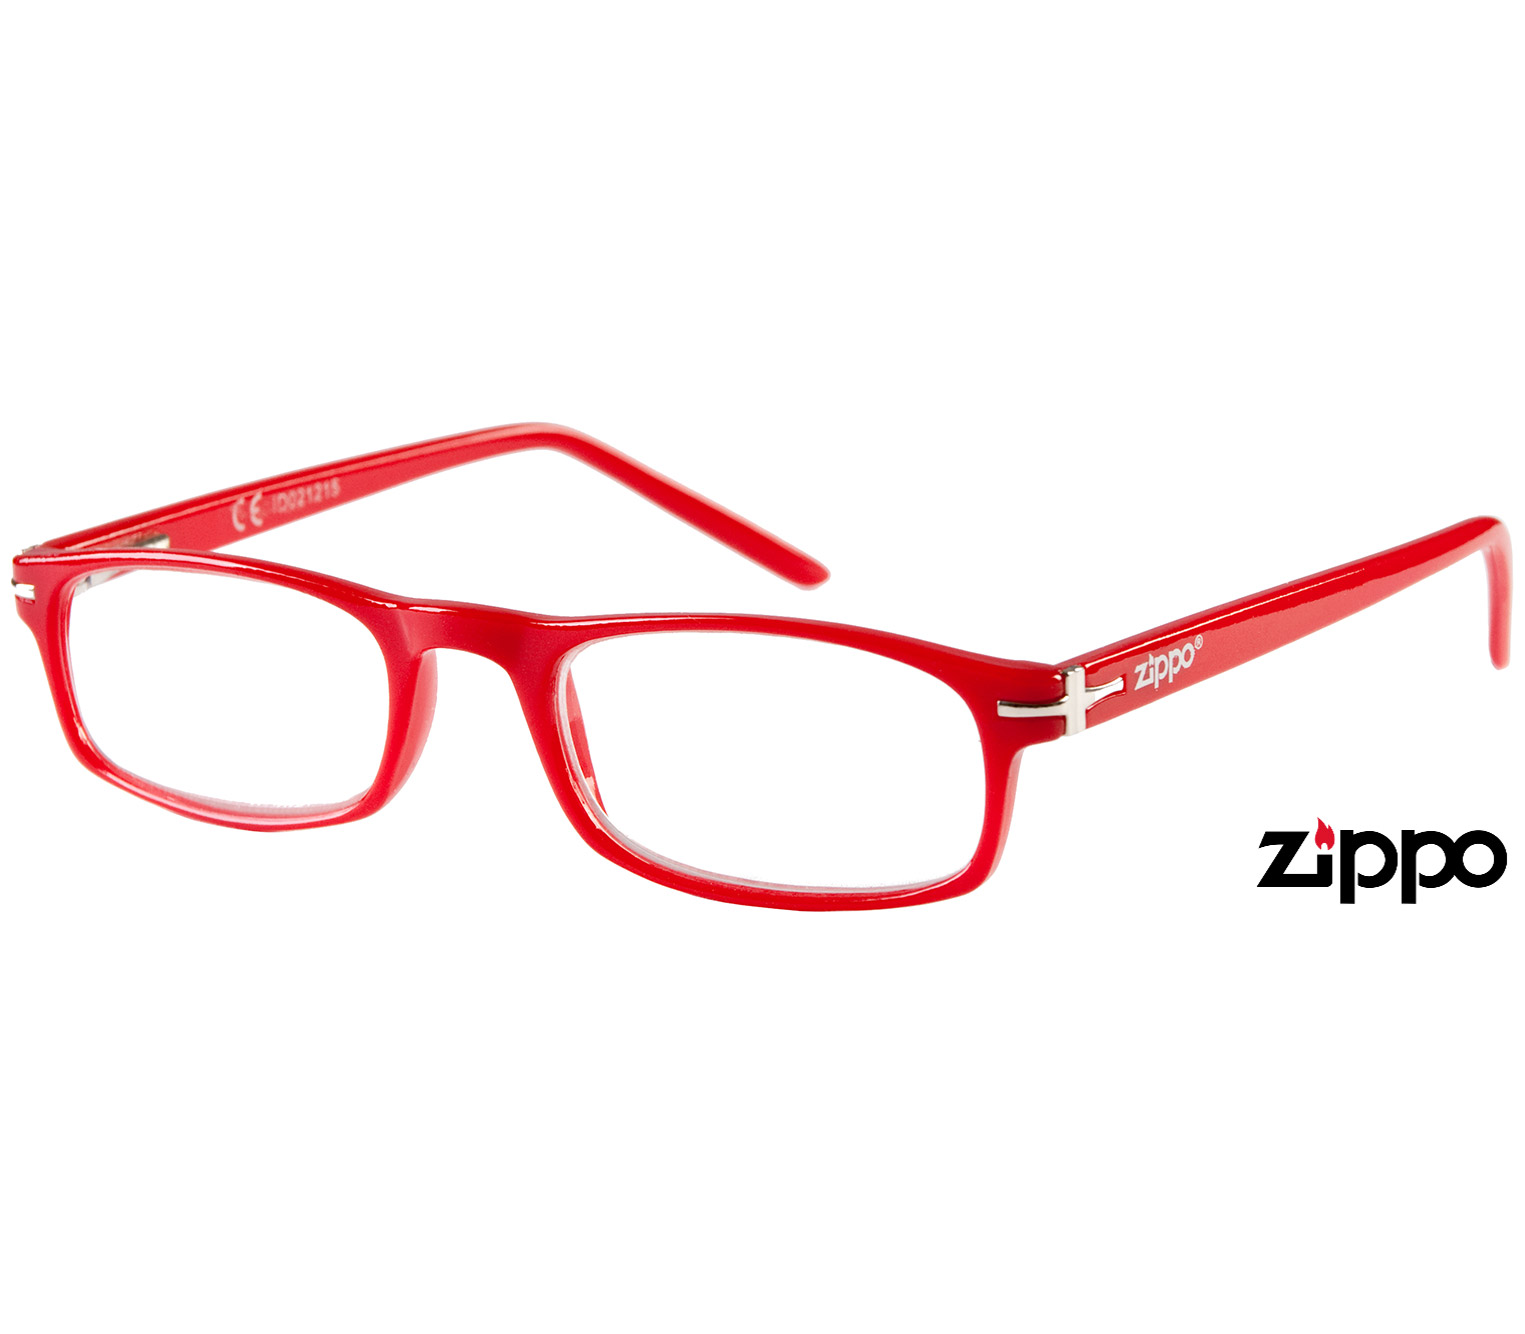 Main Image (Angle) - London (Red) Classic Reading Glasses